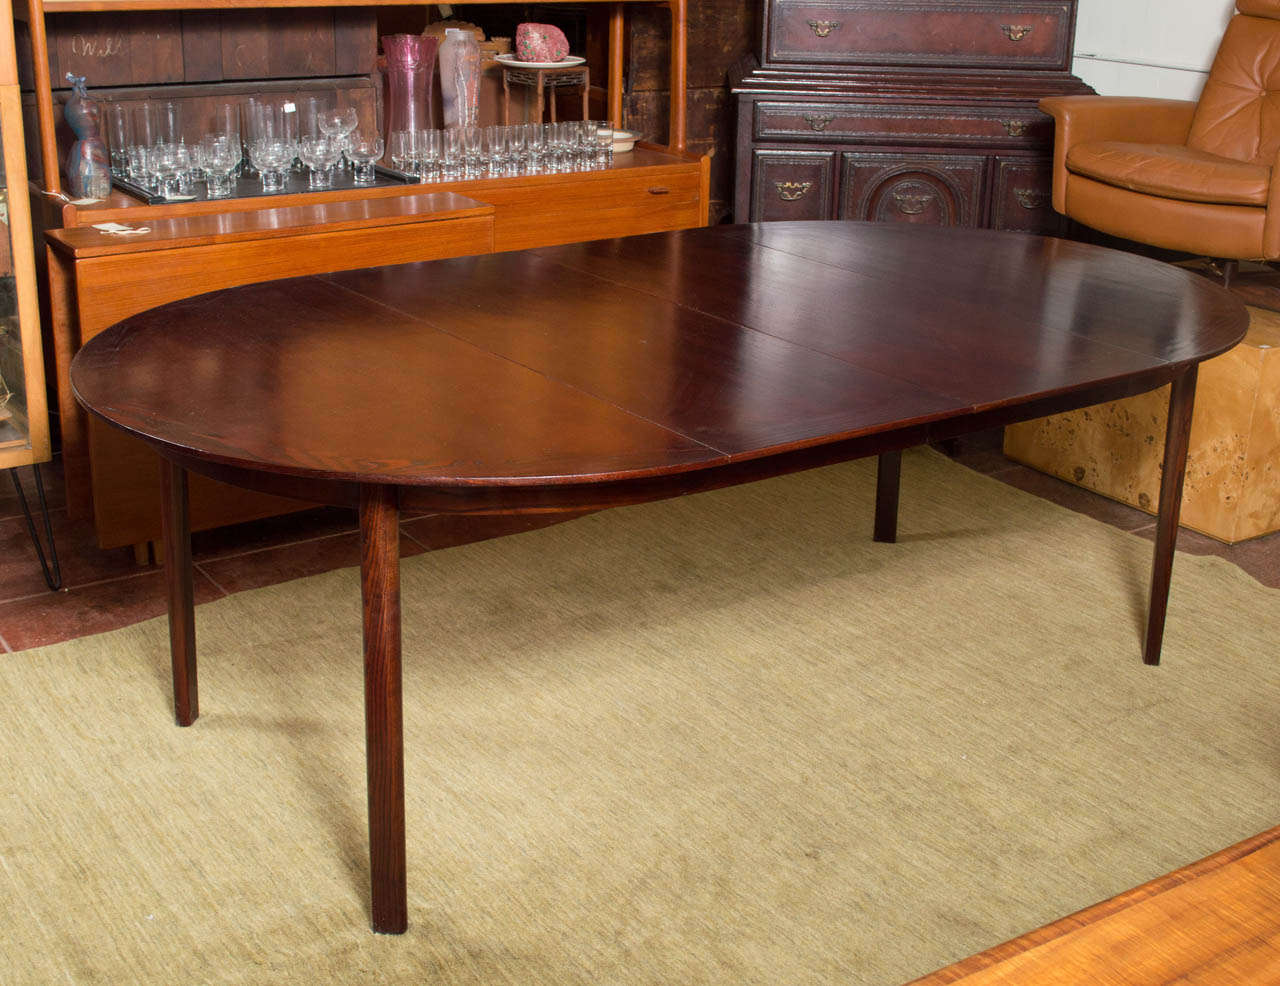 Large dunbar dining table with two leaves saturday sale for Large kitchen tables with leaves